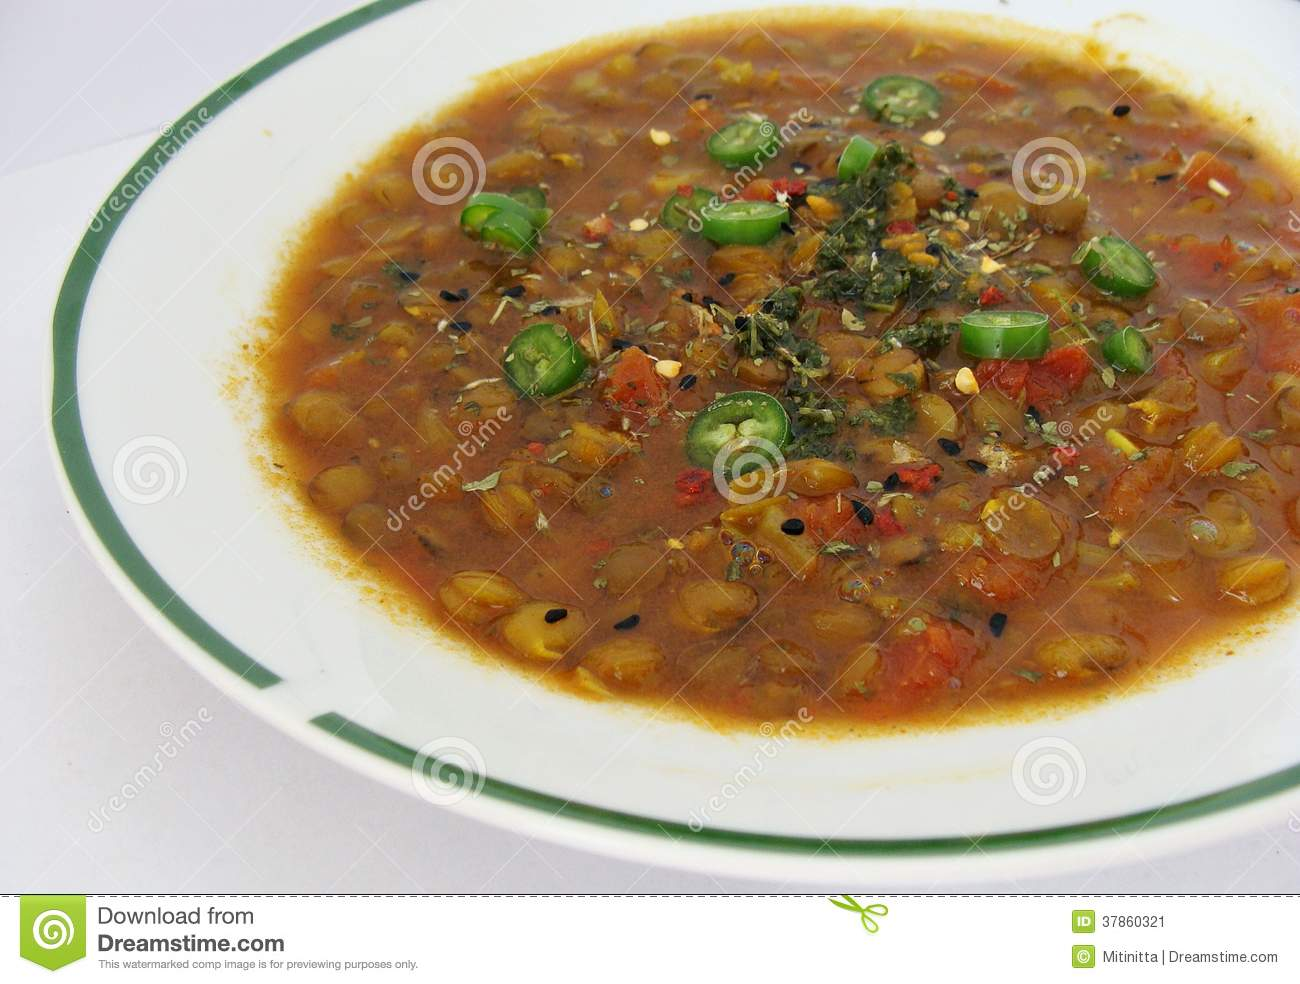 Indian Lentil and Tomato Soup